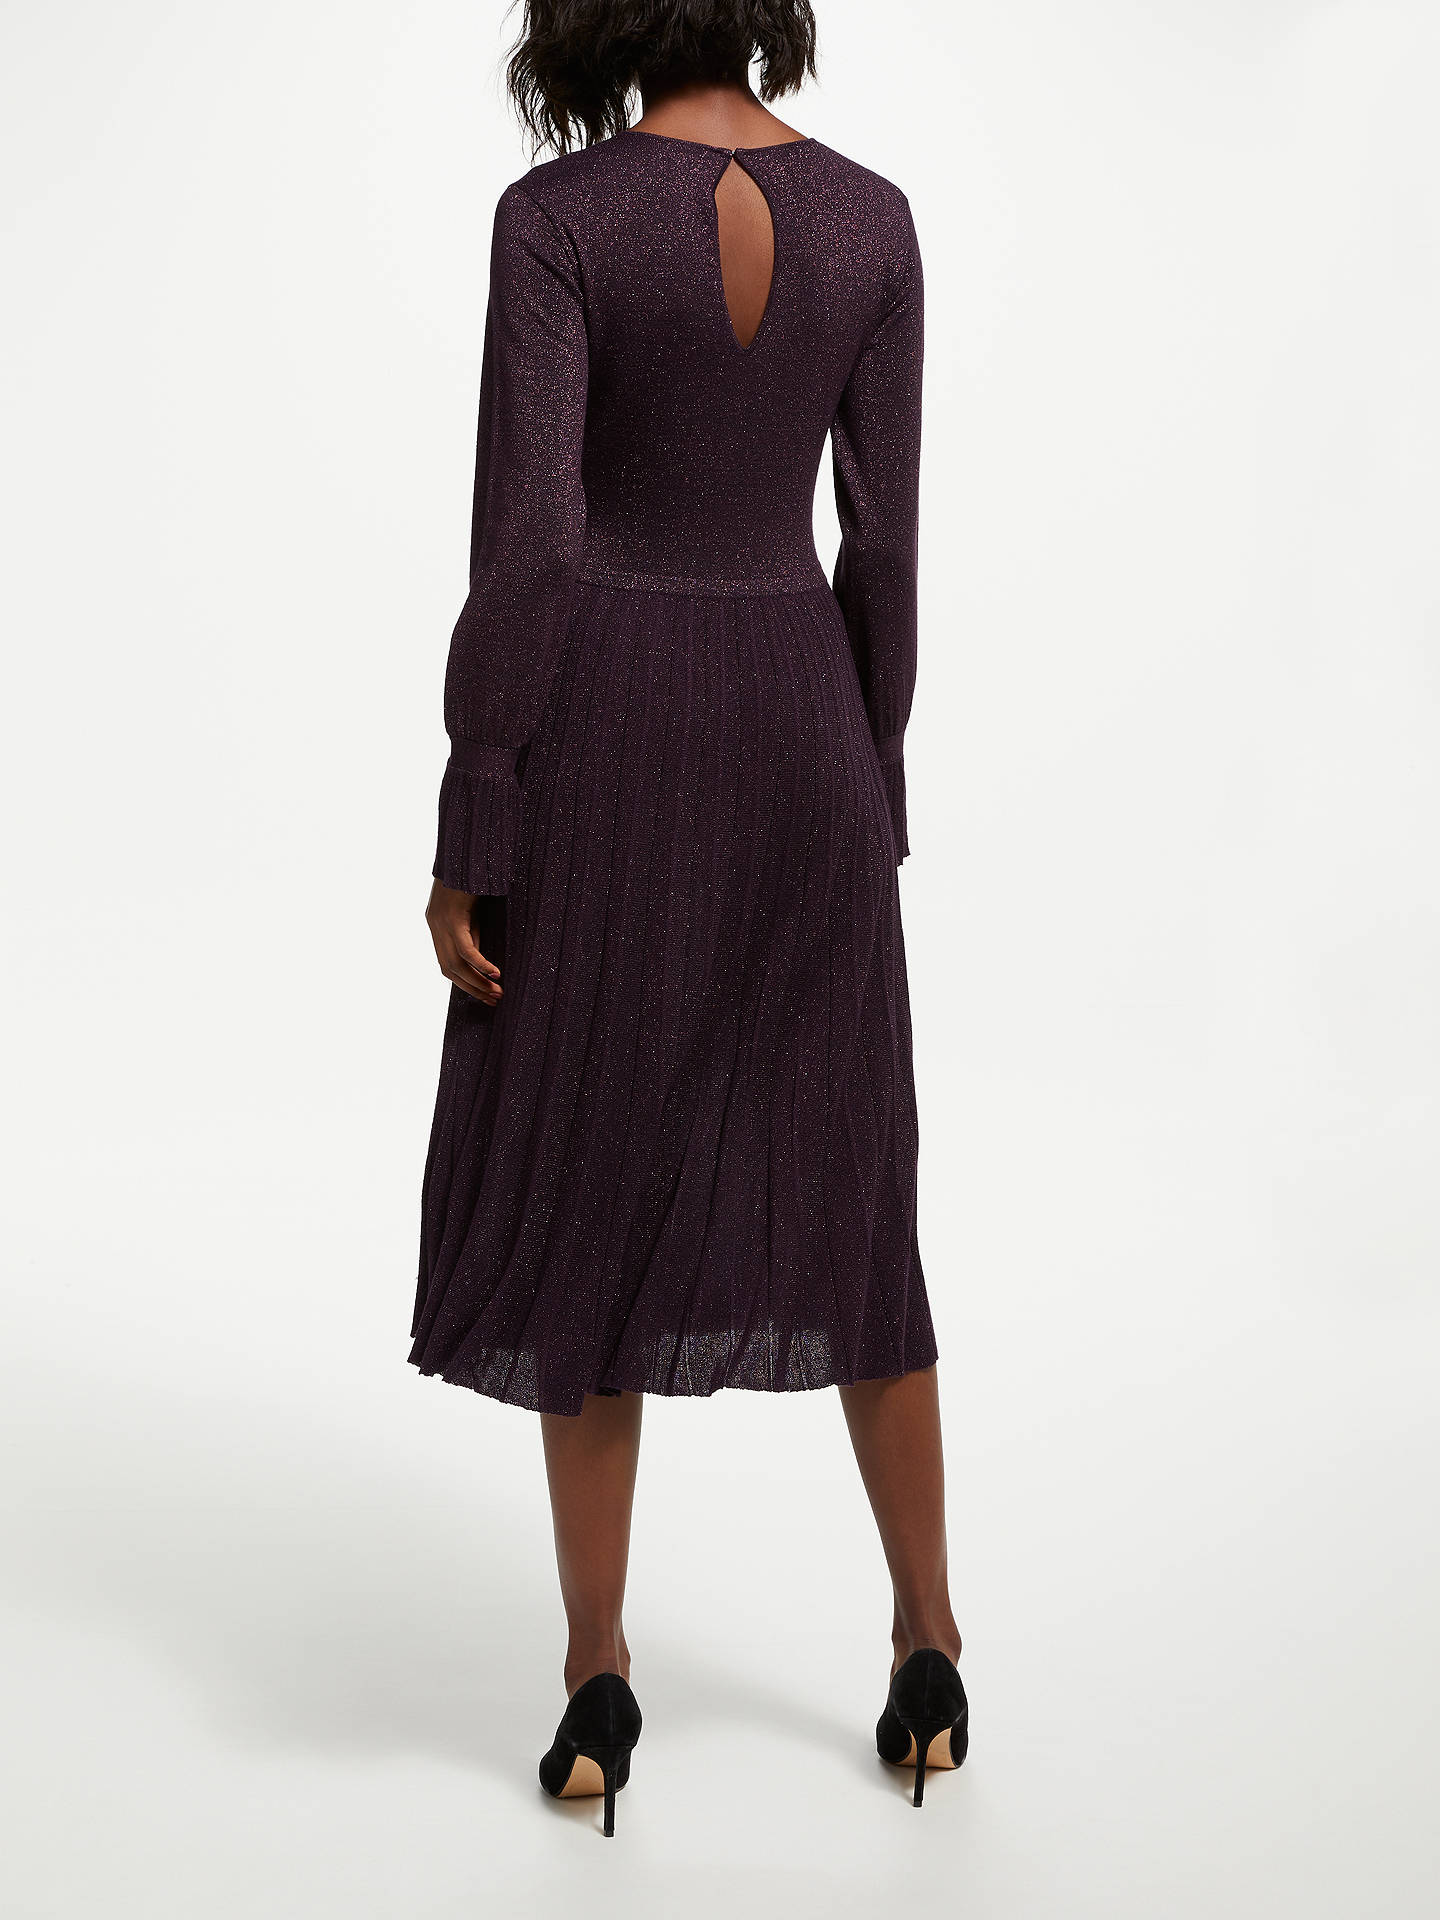 BuyBruce by Bruce Oldfield Knitted Dress, Purple, 8 Online at johnlewis.com